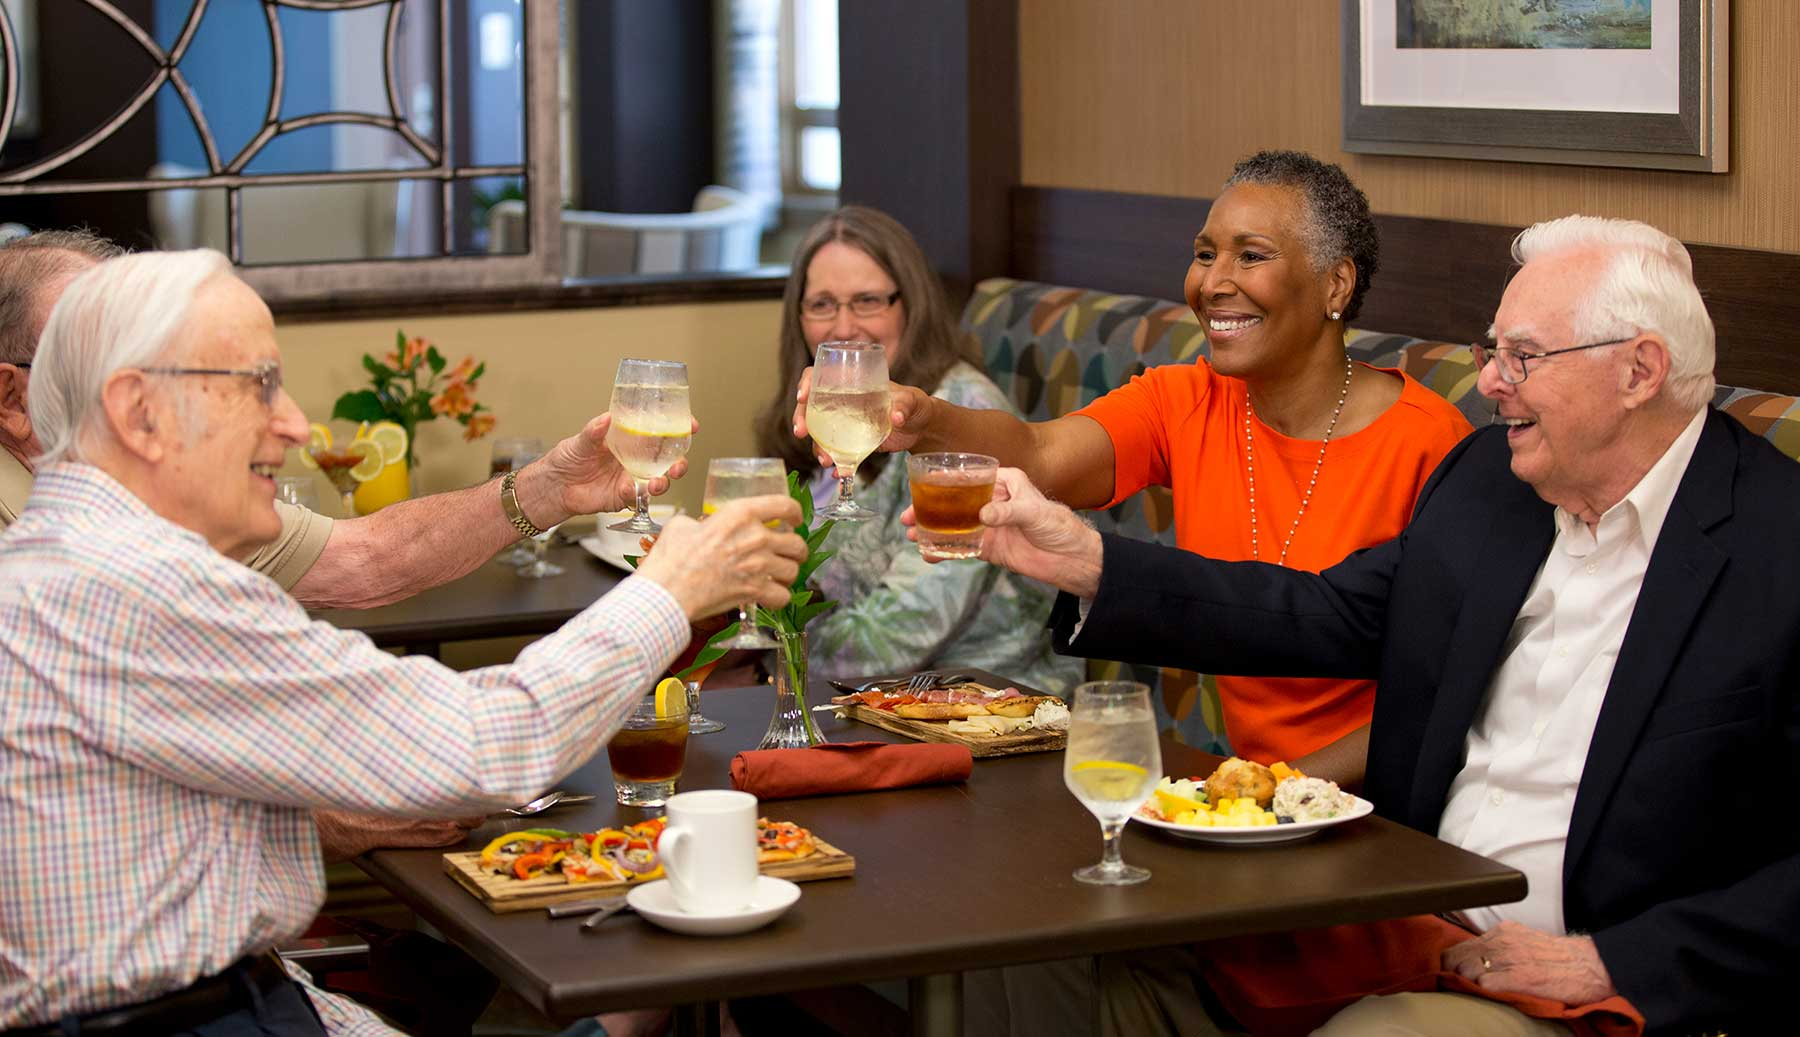 Three couples enjoying dinner in the bistro of Kingswood Senior Living Located in Kansas City, MO.